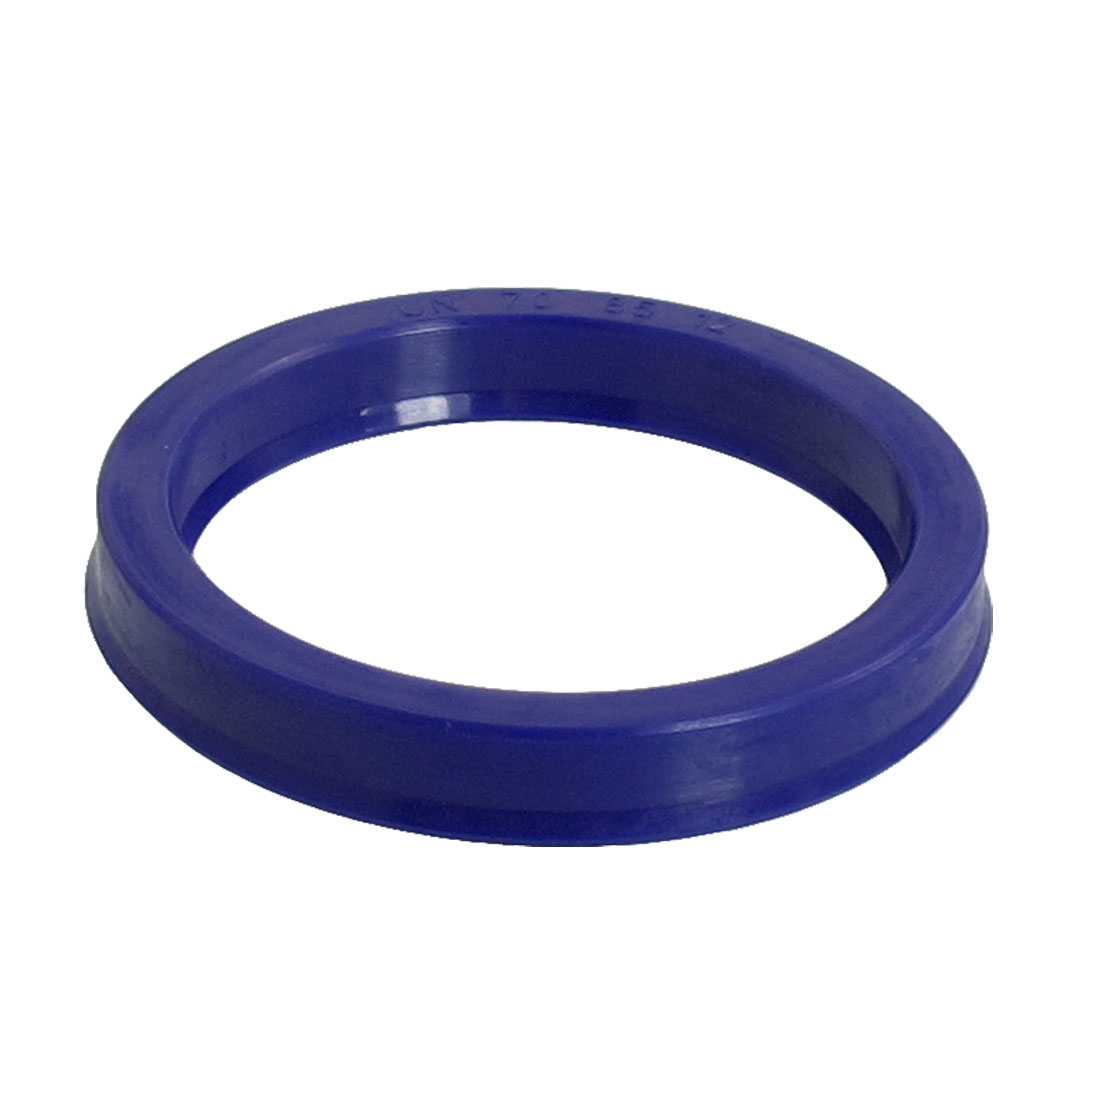 Blue PU 70mm x 85mm x 12mm Double Lip Sealing Cushion Dust Seal Ring